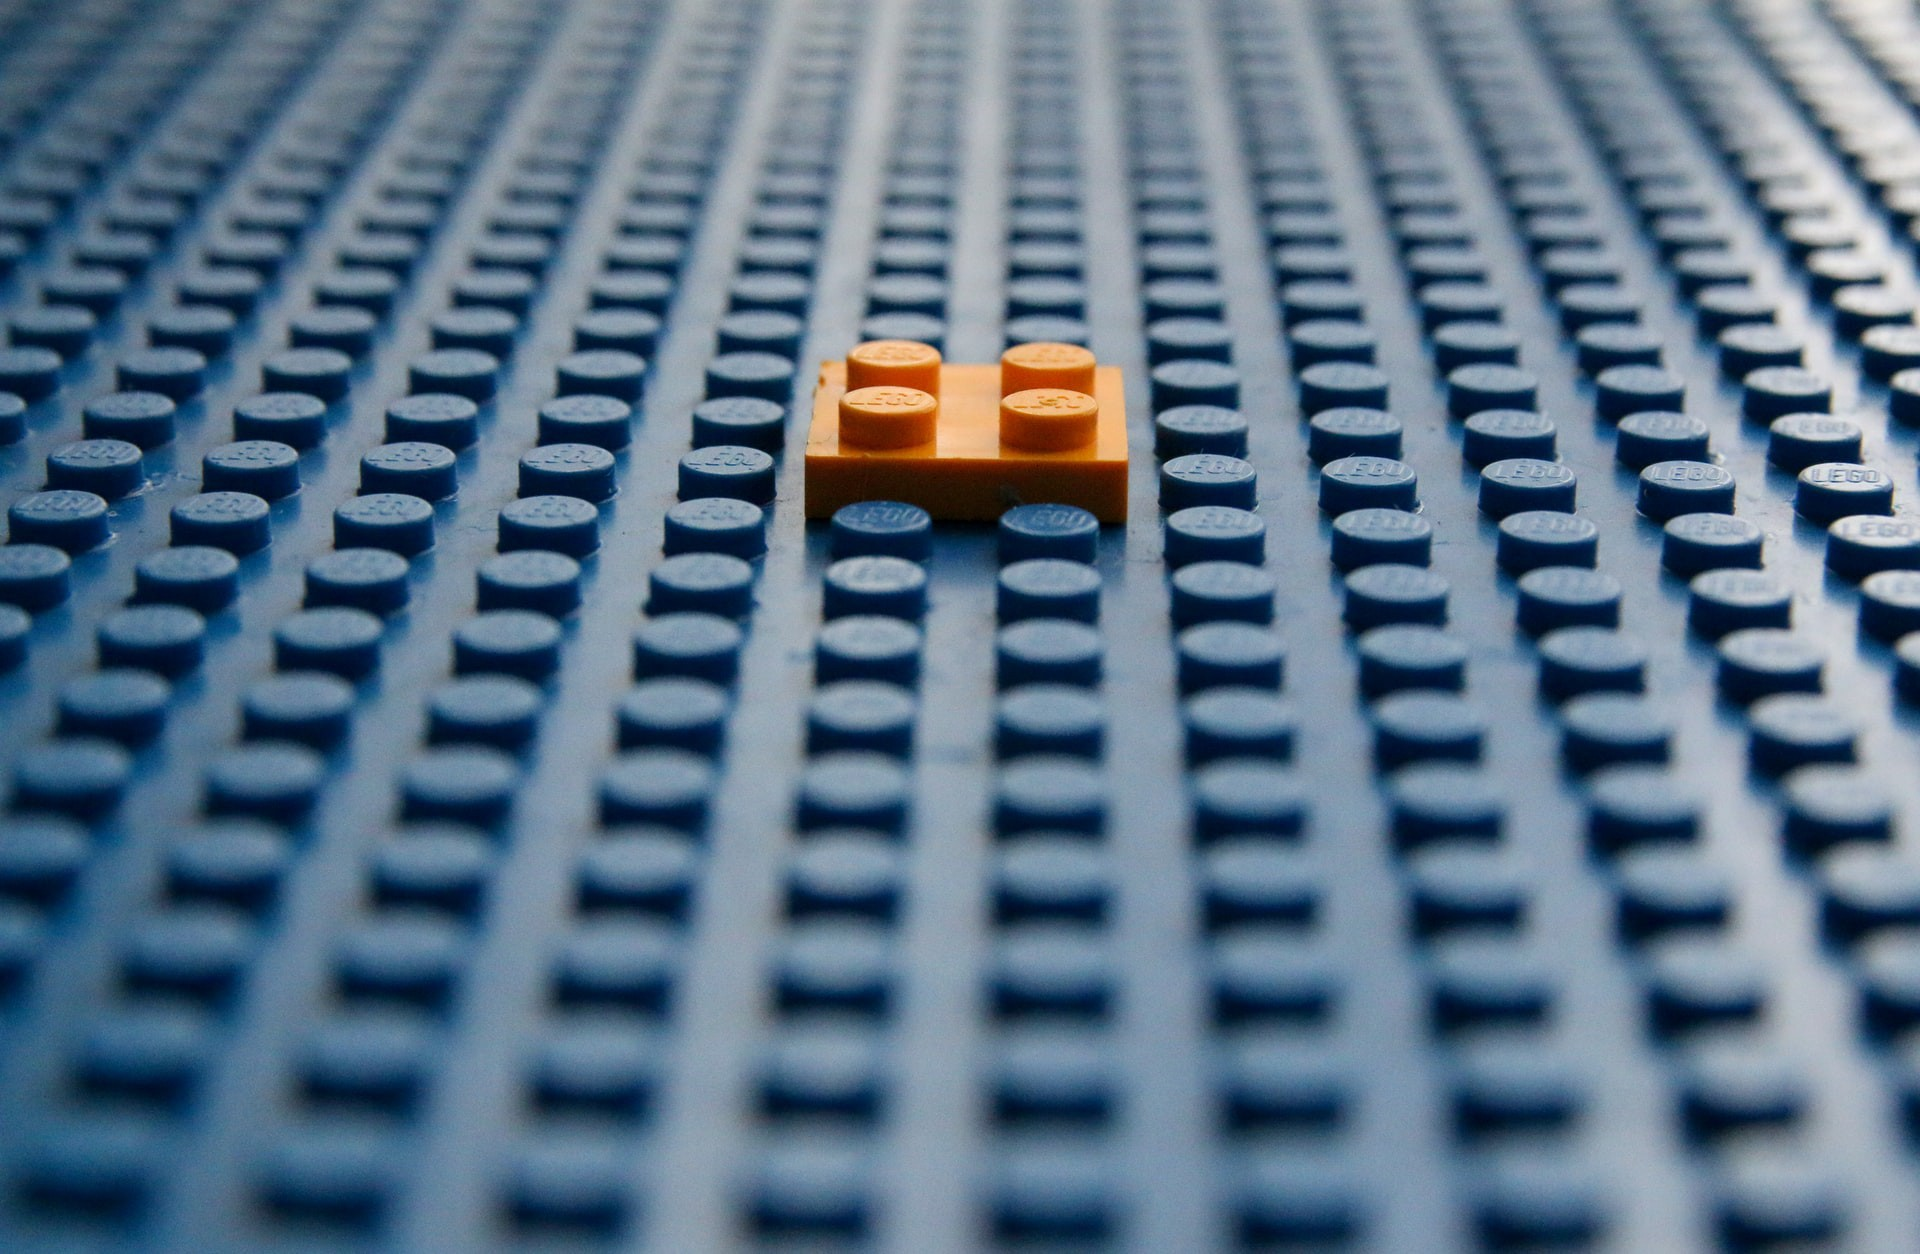 A tiny lego piece is placed on a lego board.